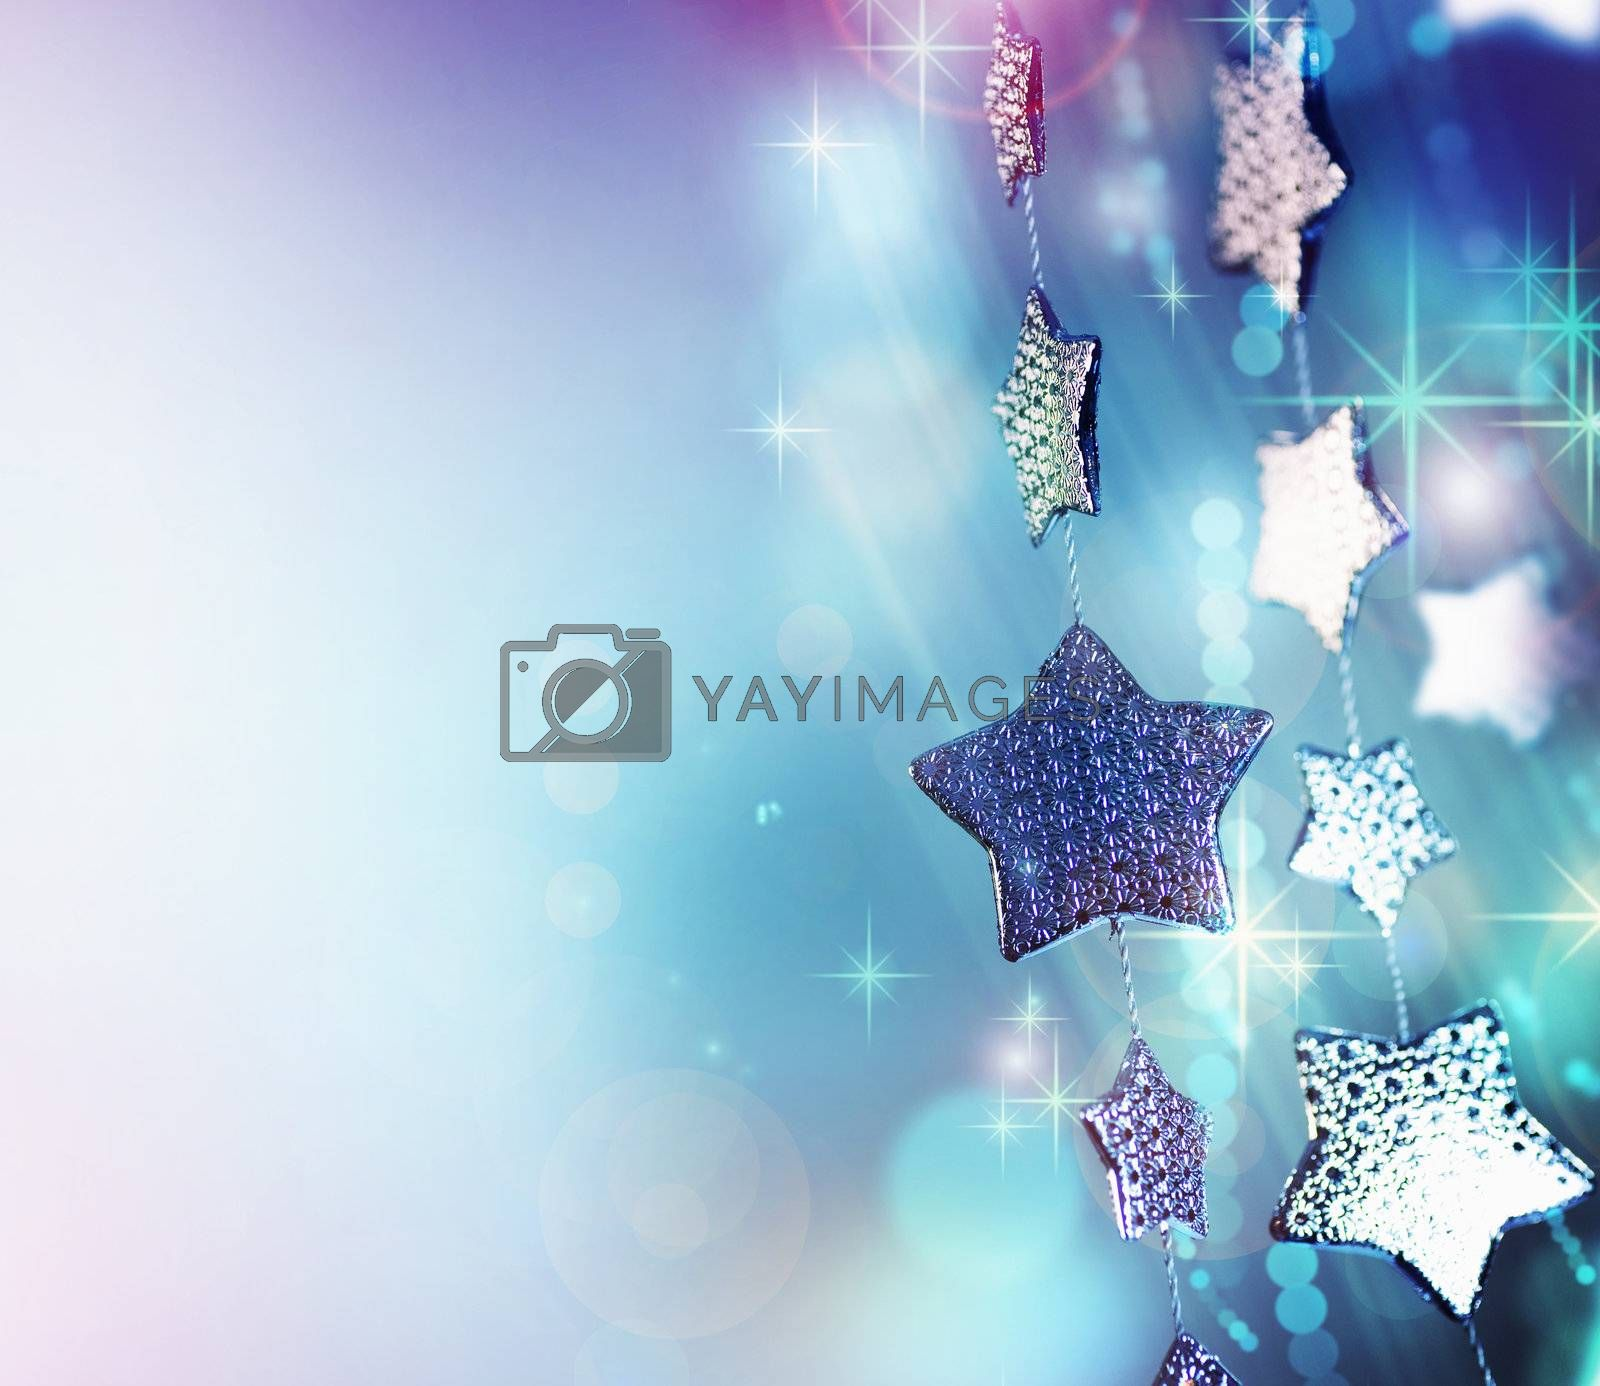 Abstract Christmas background. Holiday abstract background by Subbotina Anna